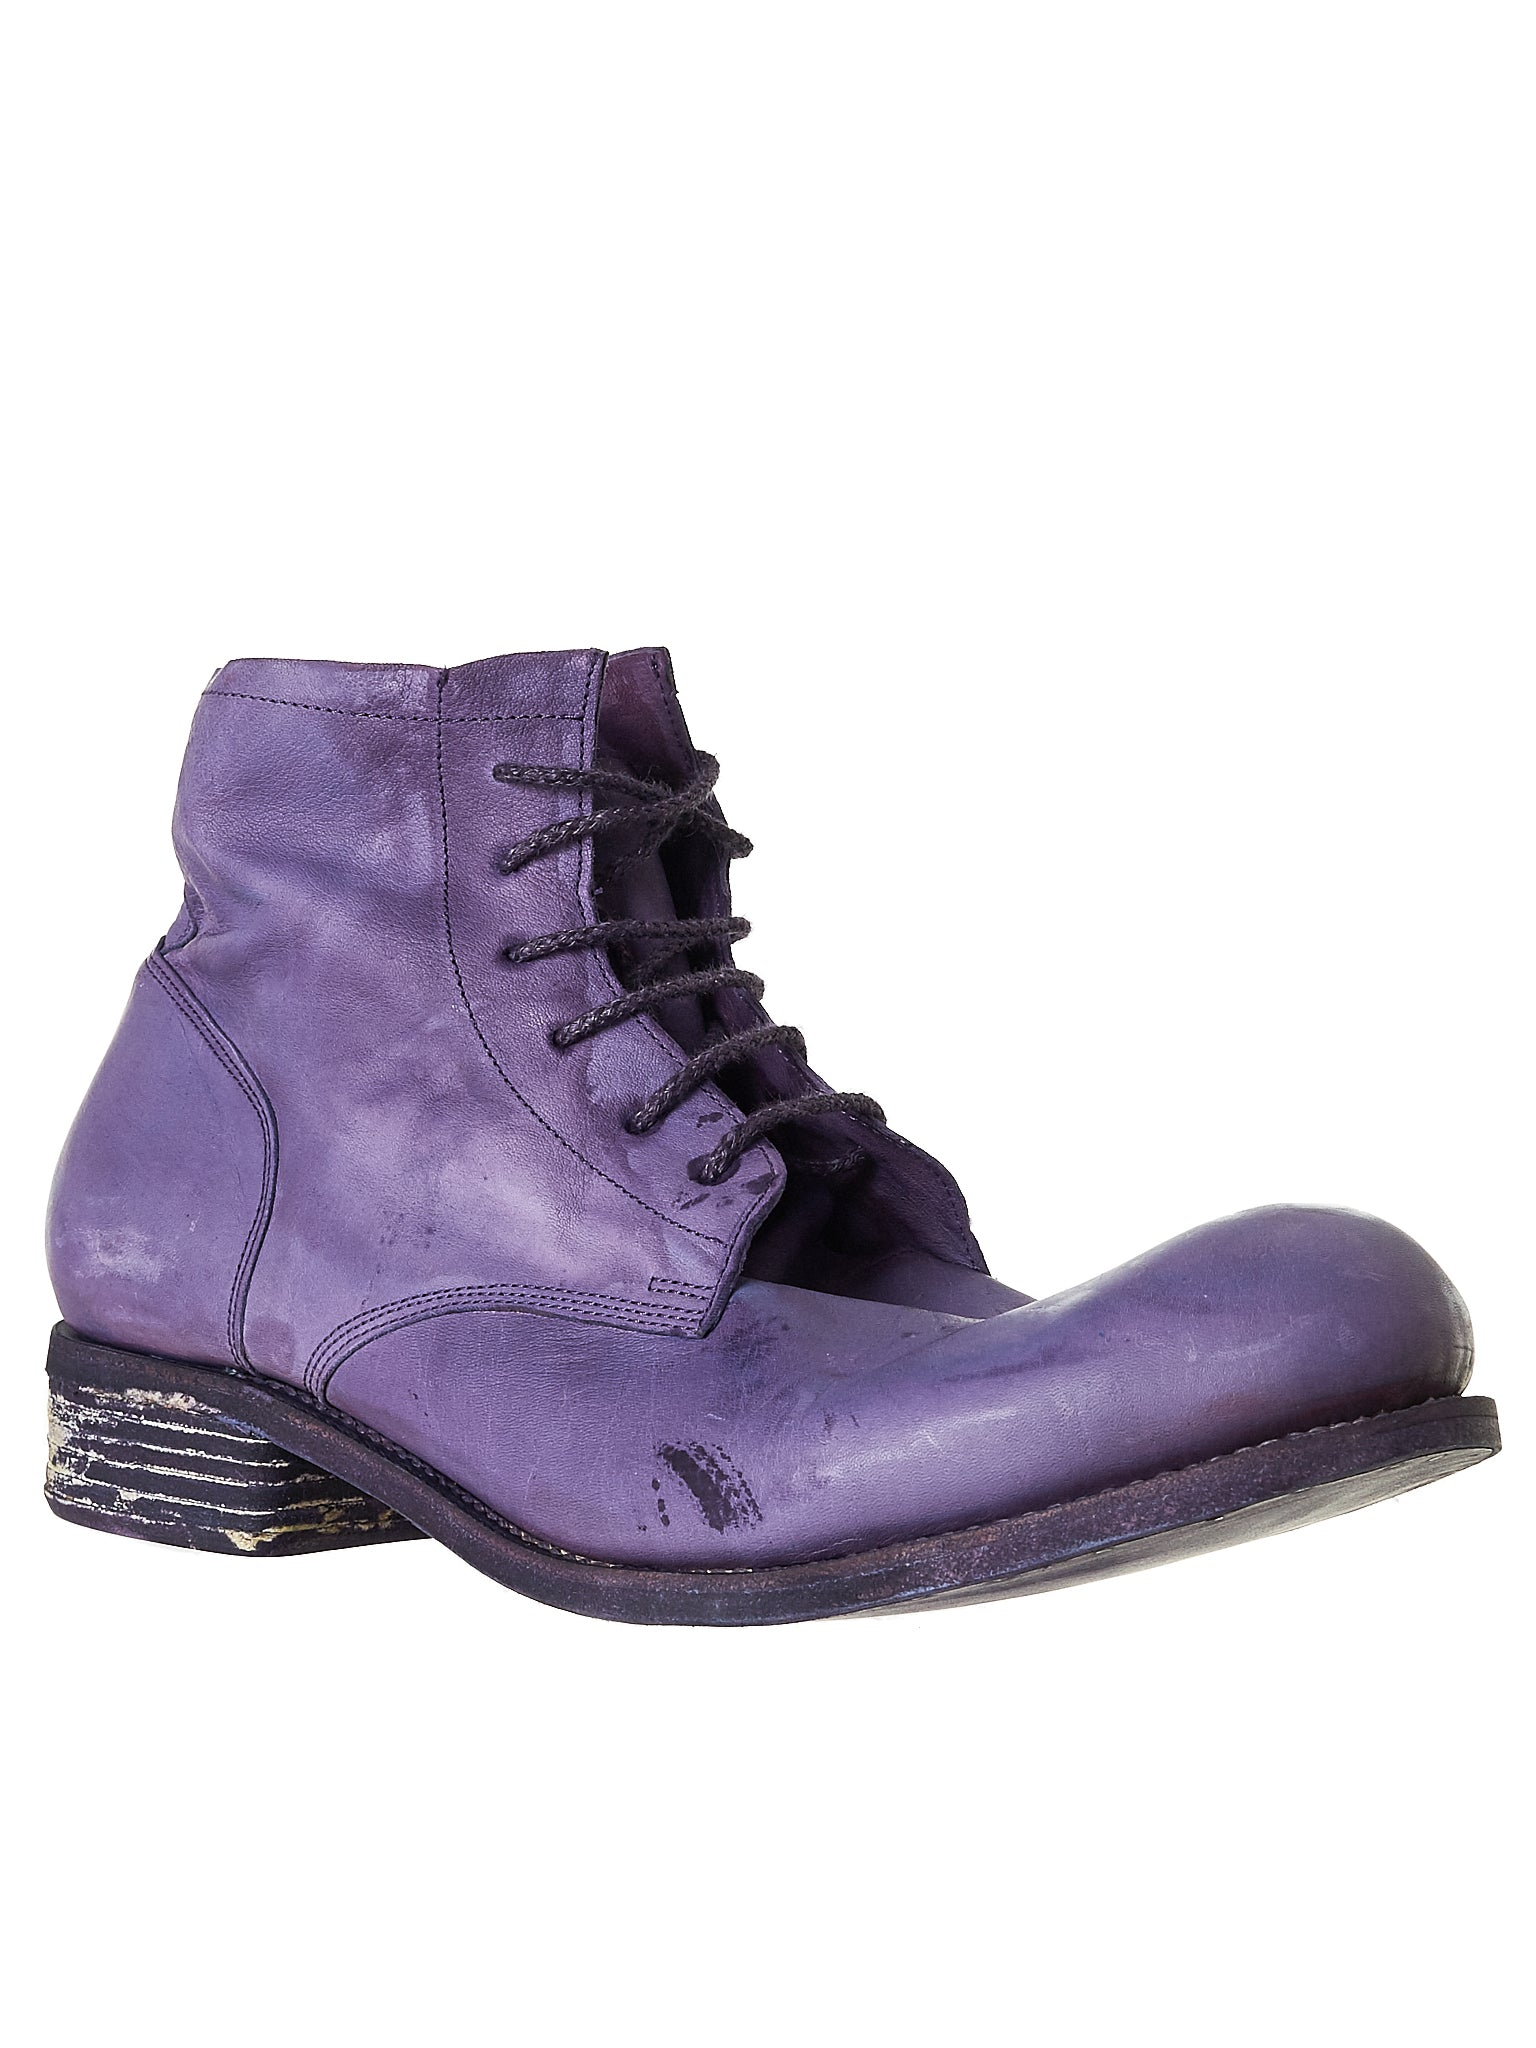 A Diciannoveventitre Kangaroo Leather Boot - Hlorenzo Side